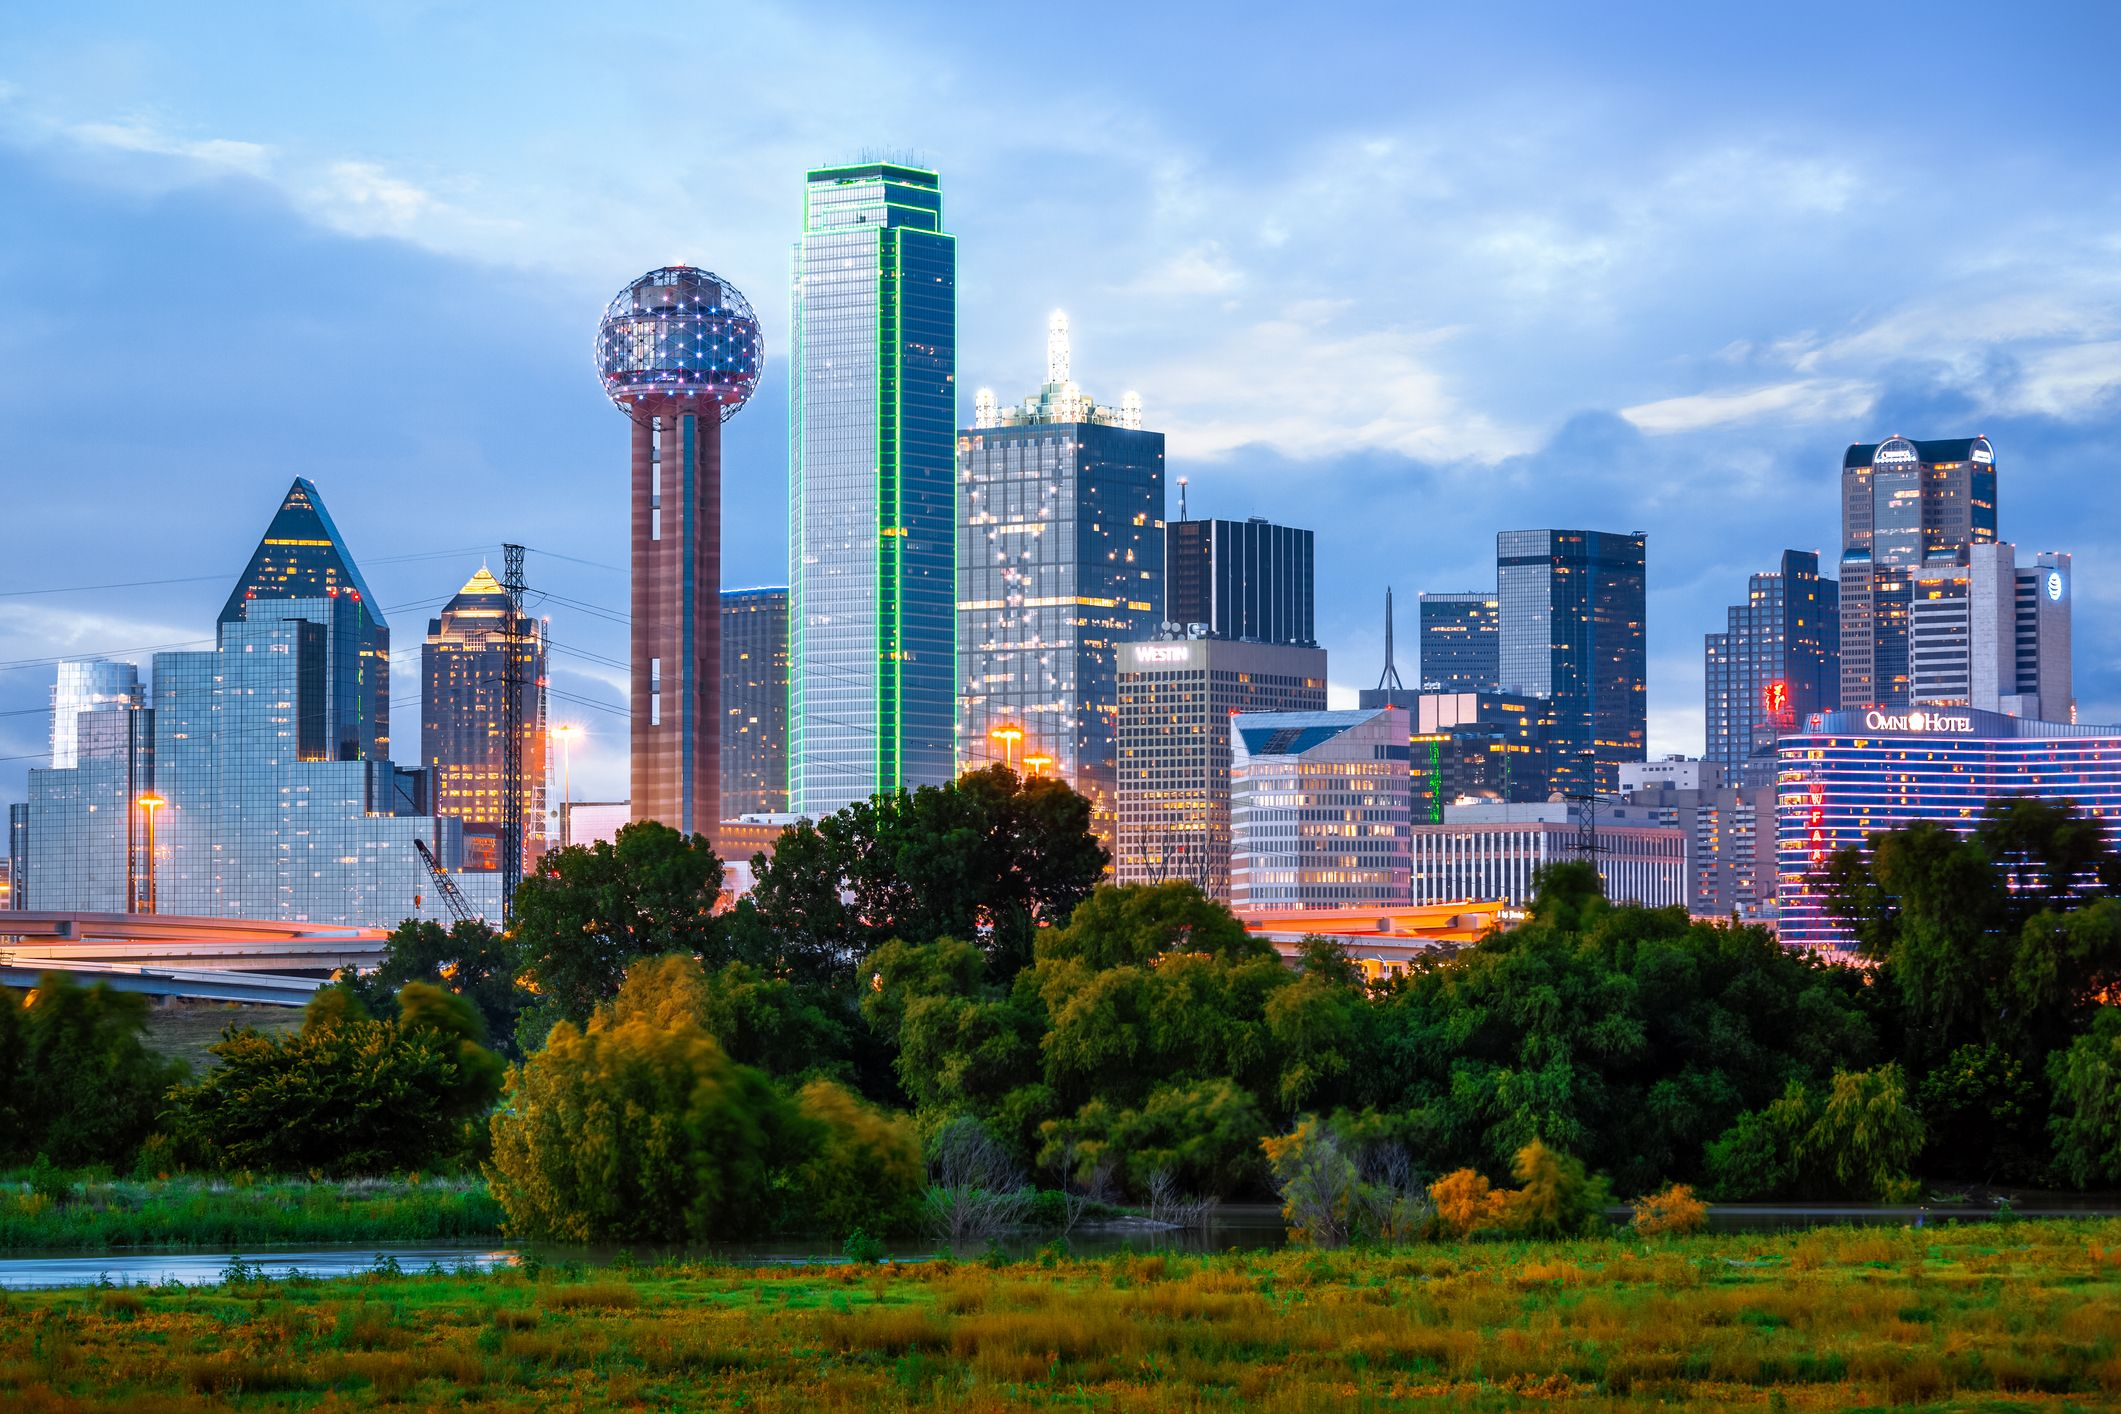 We are very pleased to announce that B-612 is now fully operational in Dallas, Texas, further expanding our presence in the US and bringing our total number of locations worldwide to a solid 24!